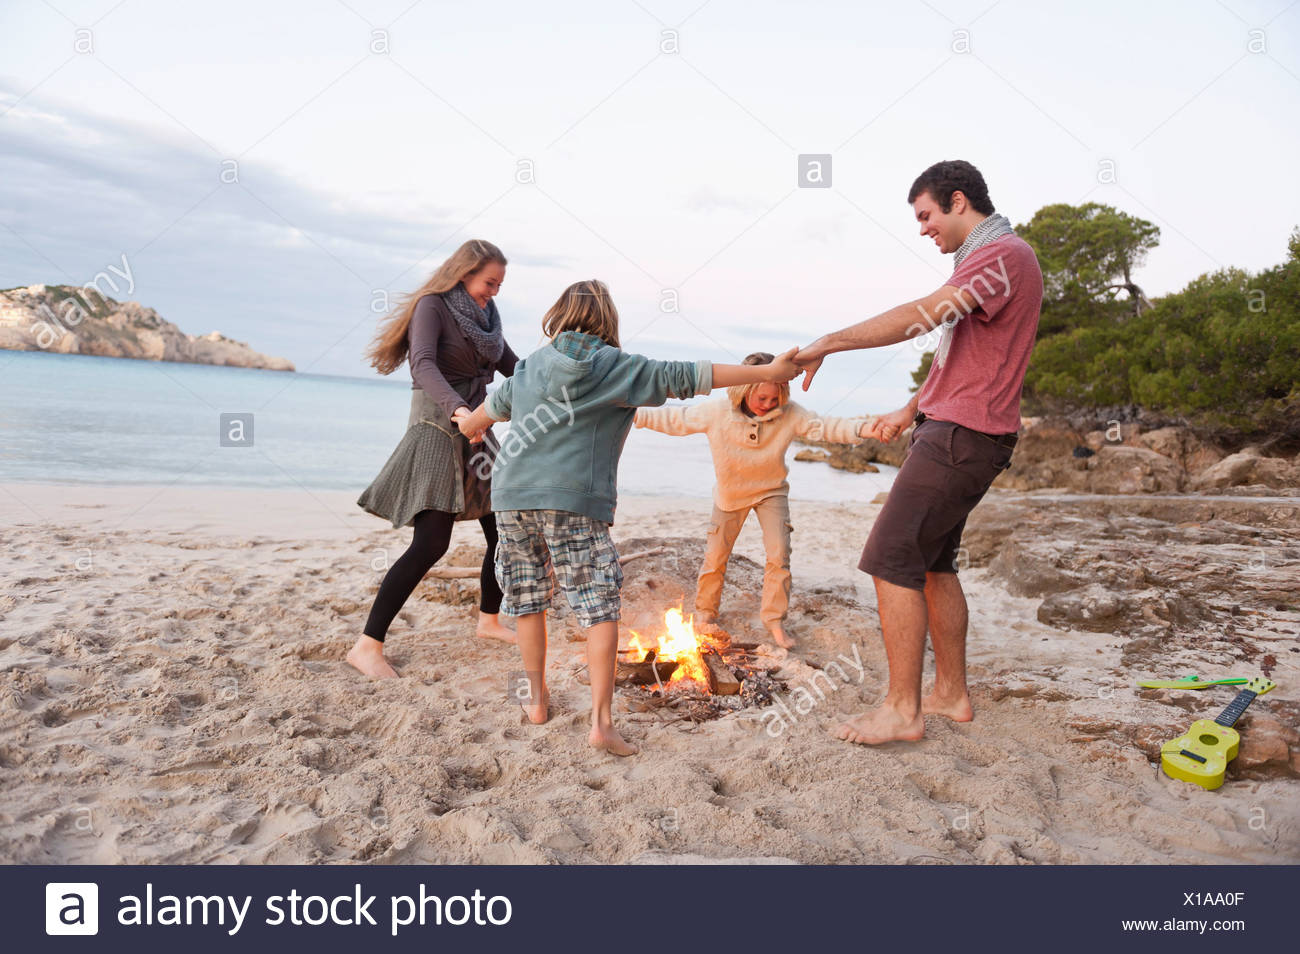 Spain, Mallorca, Friends dancing at camp fire on beach - Stock Image